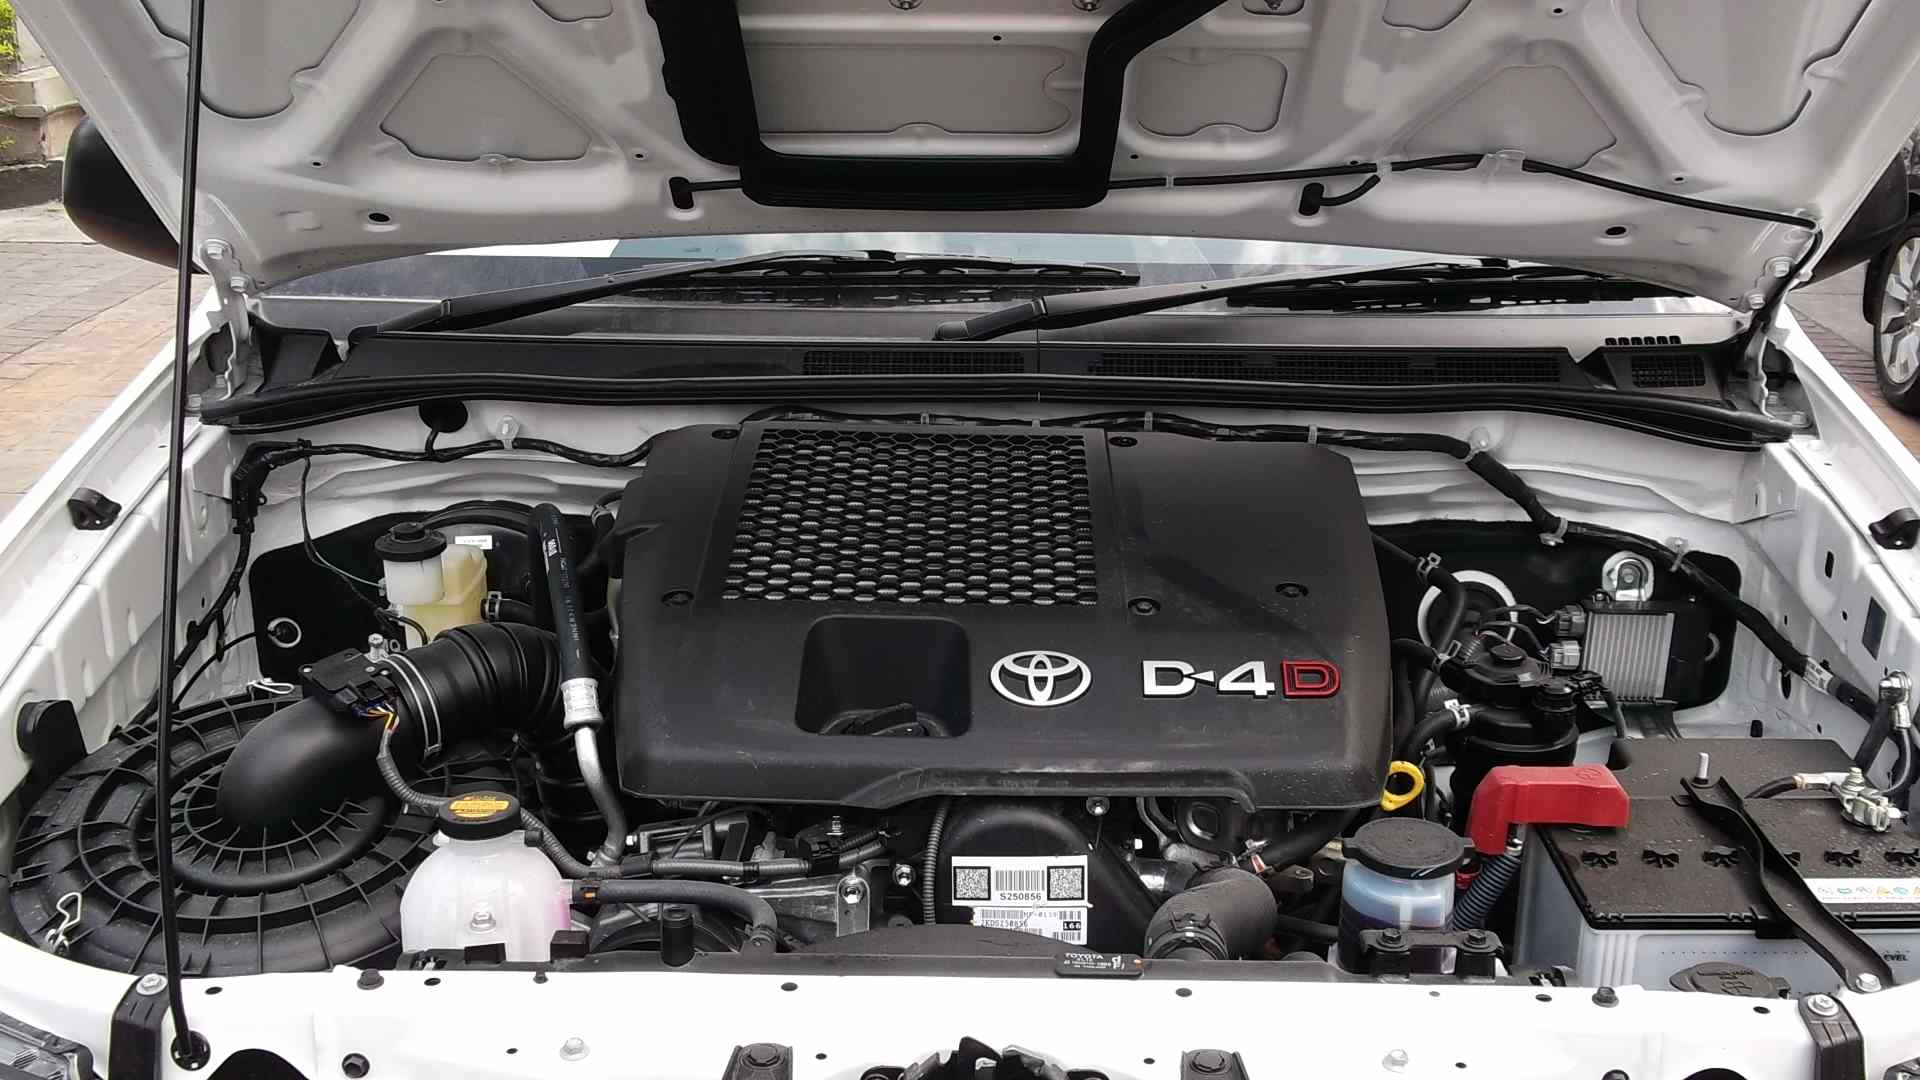 Toyota Vigo Common Rail Diesel Engines